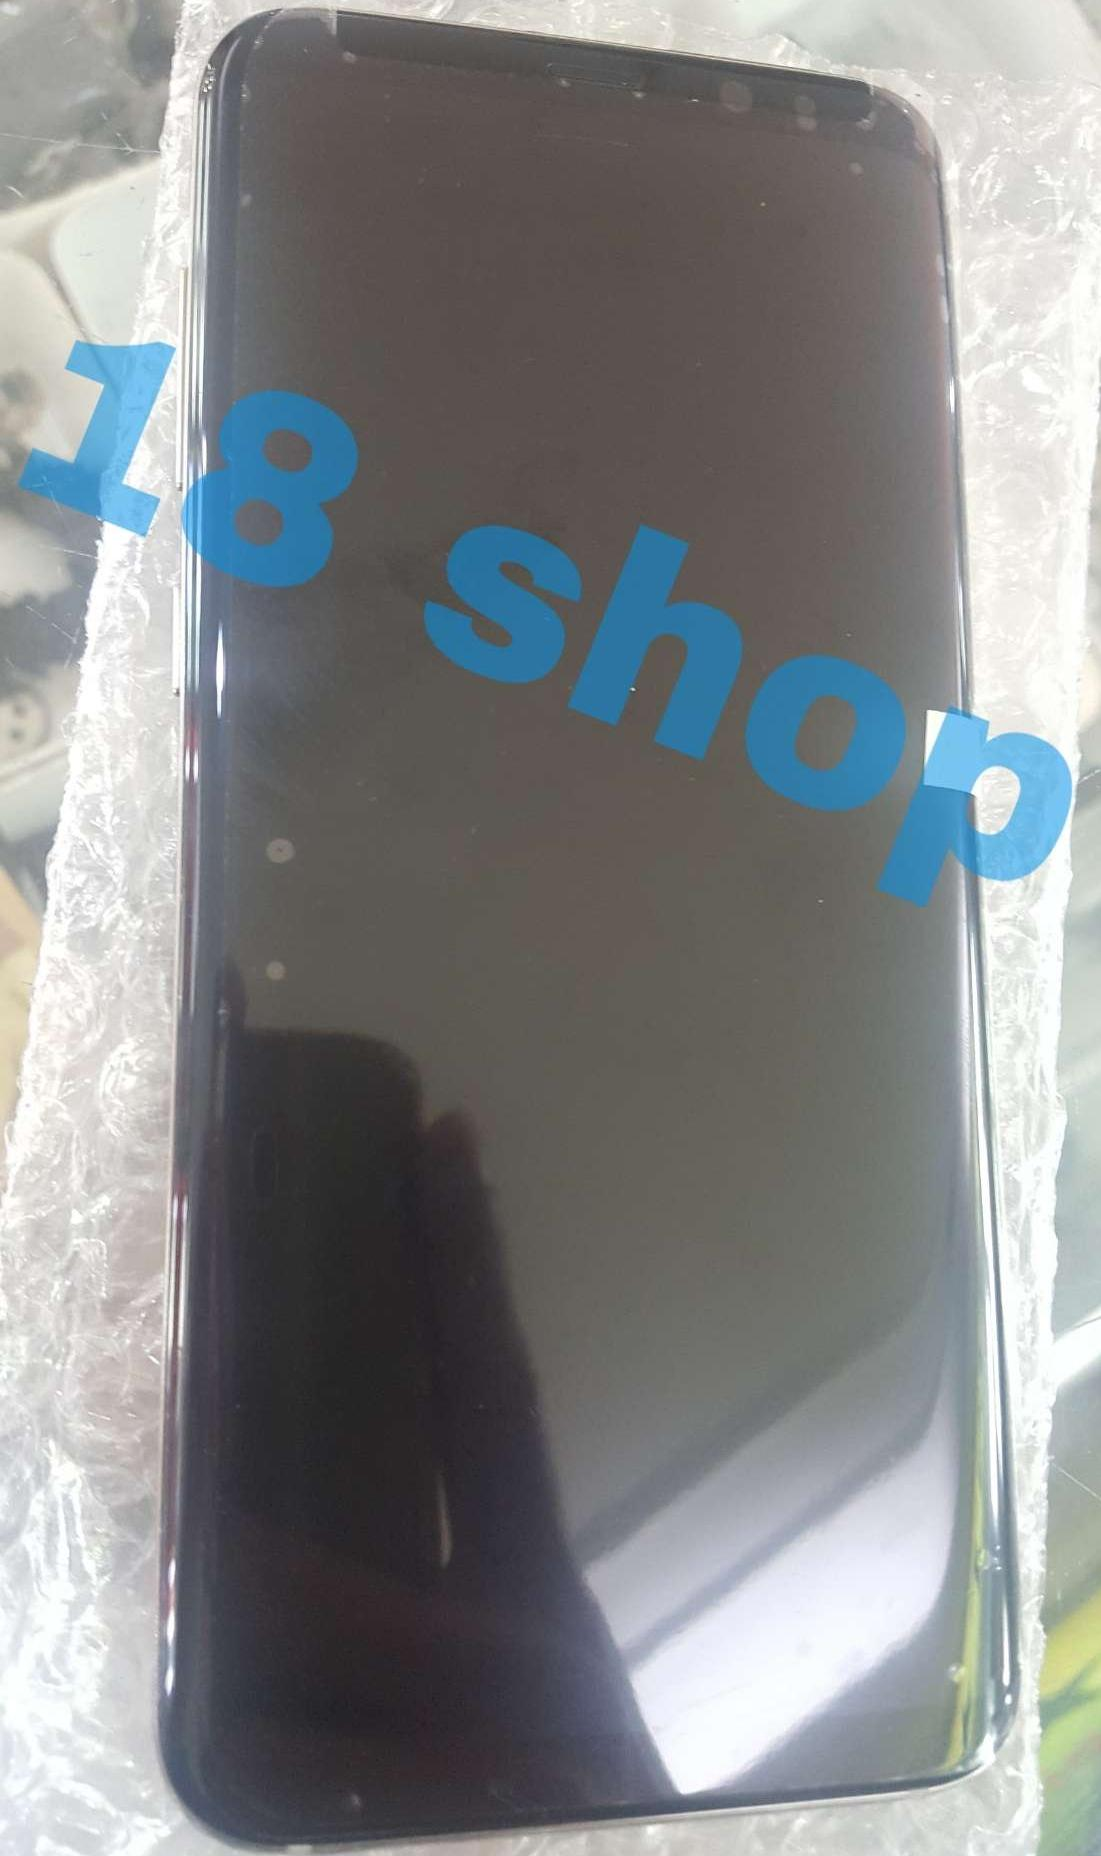 LCD samsung s8 plus. Lcd touchscreen s8 plus. LCD fullset samsung s8 plus